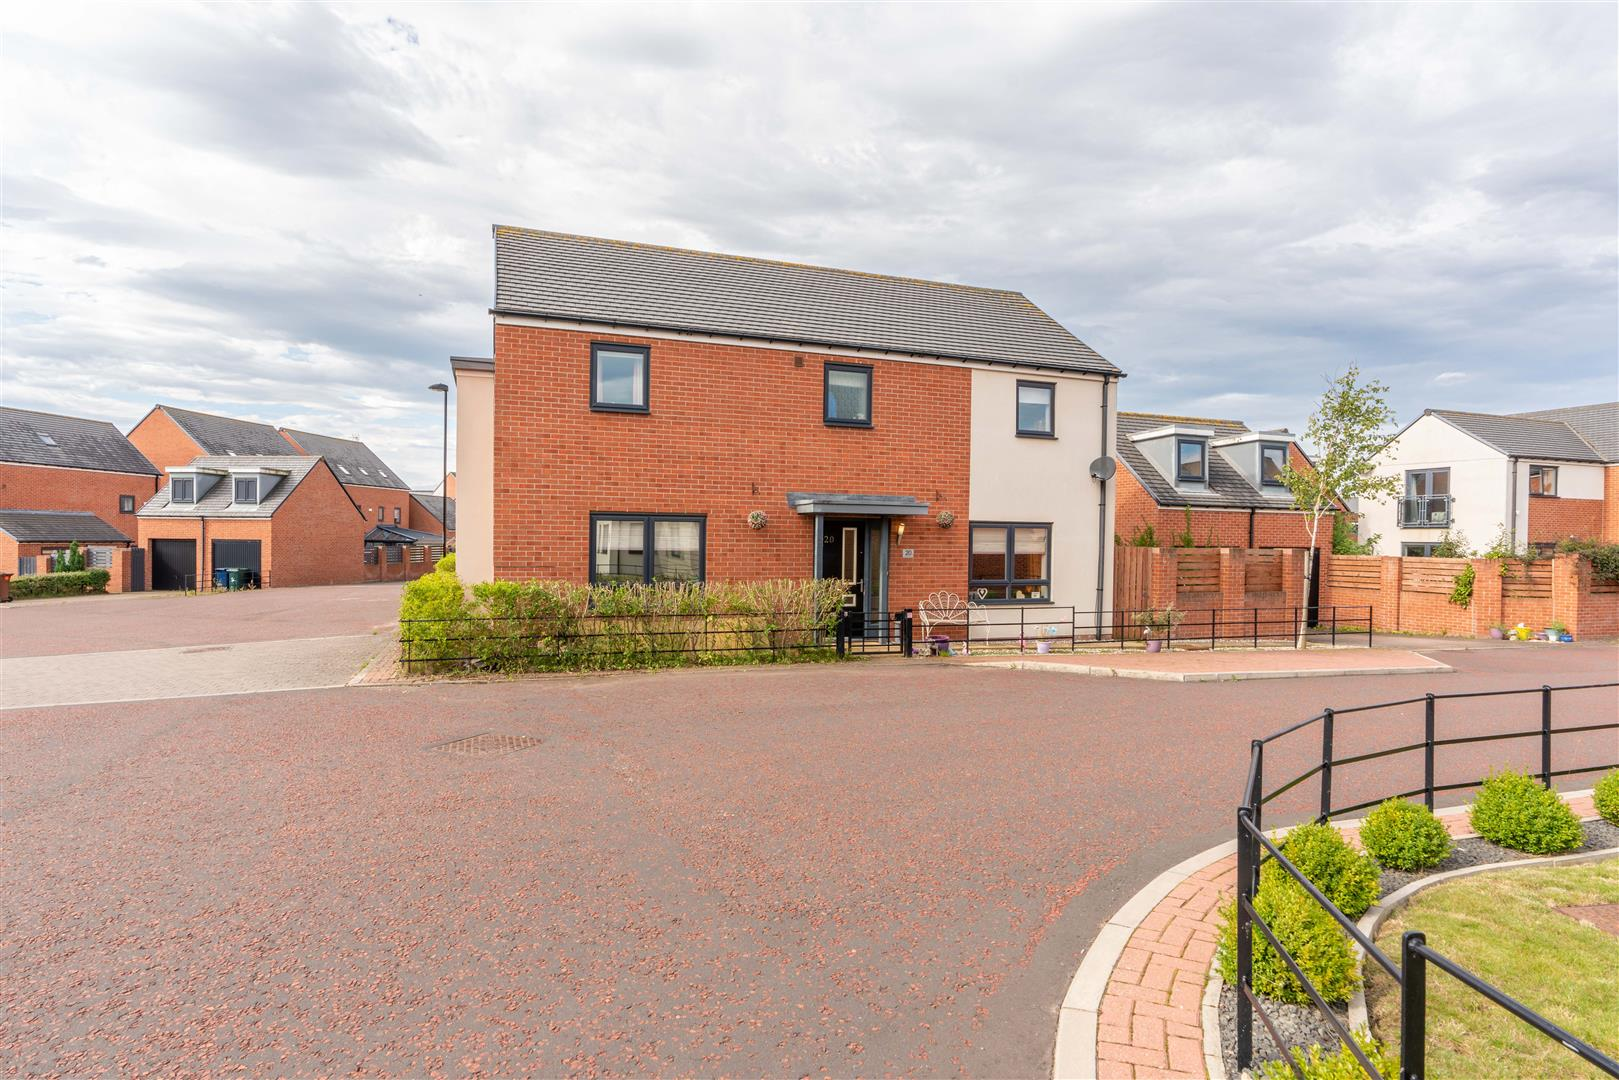 5 bed detached house for sale in Kimmerstone Road, Great Park, NE13